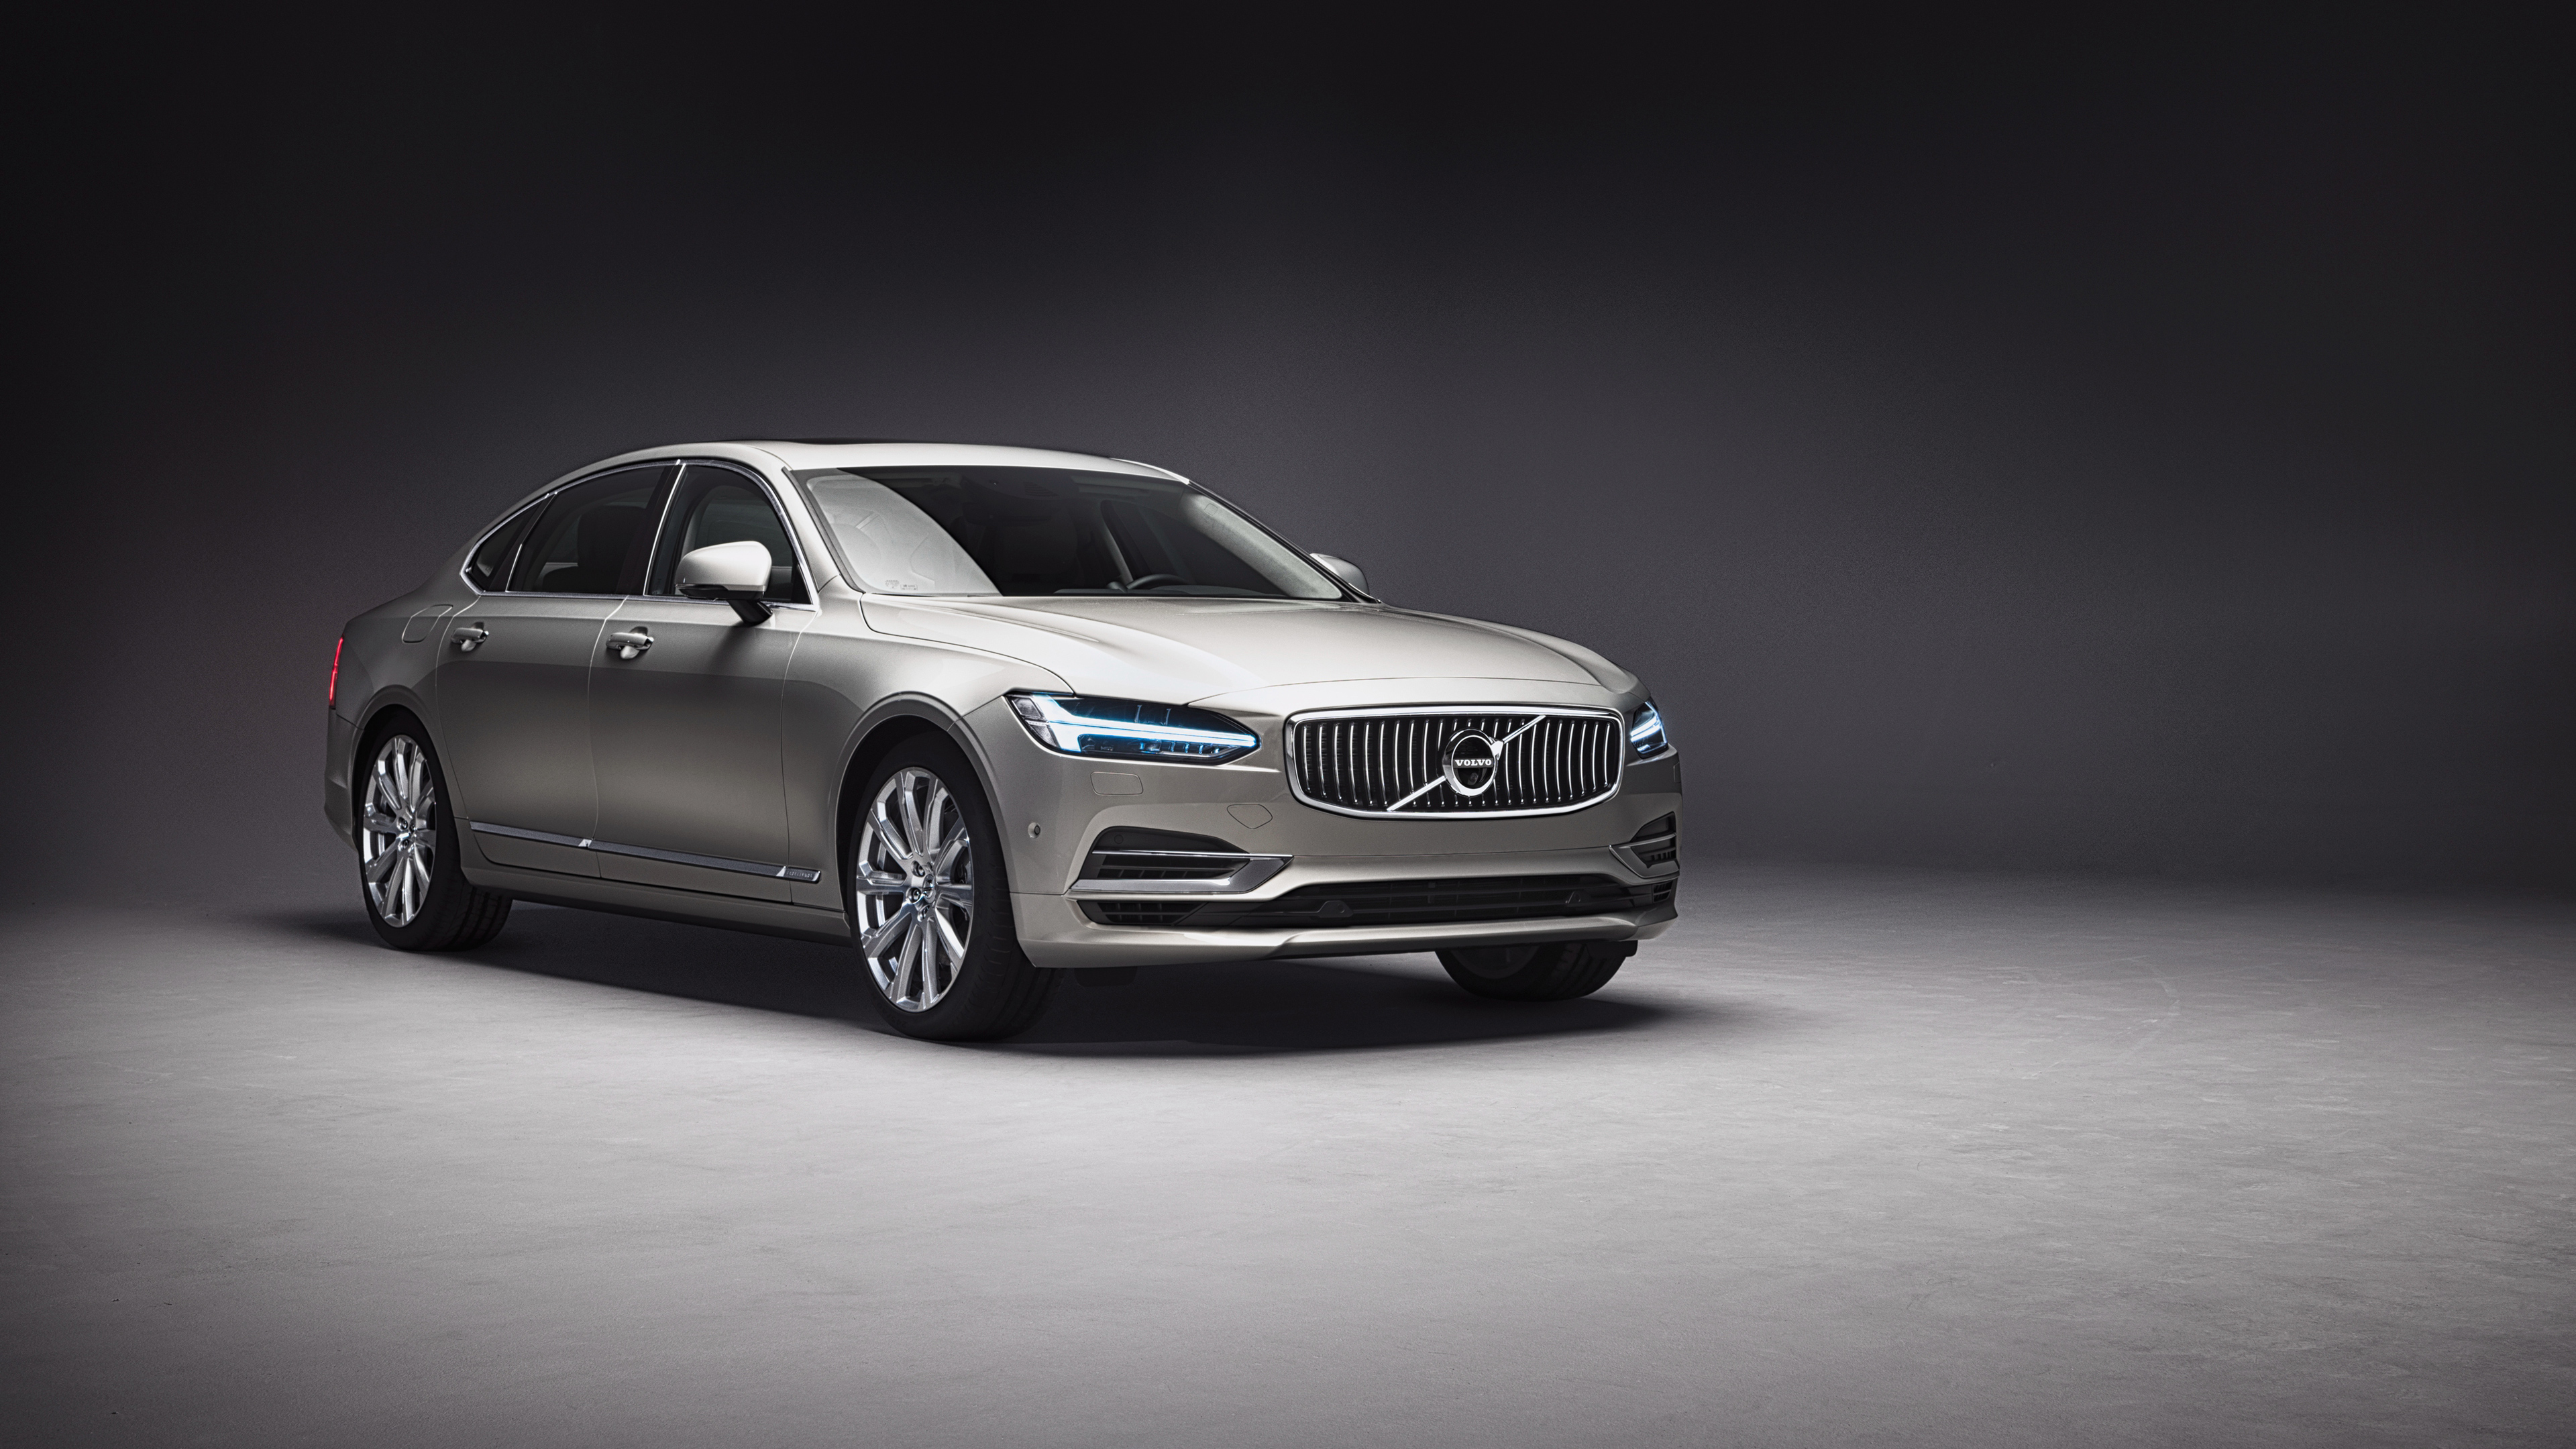 90 S Walls Google Search: 2018 Volvo S90 Ambience Concept 4K Wallpaper